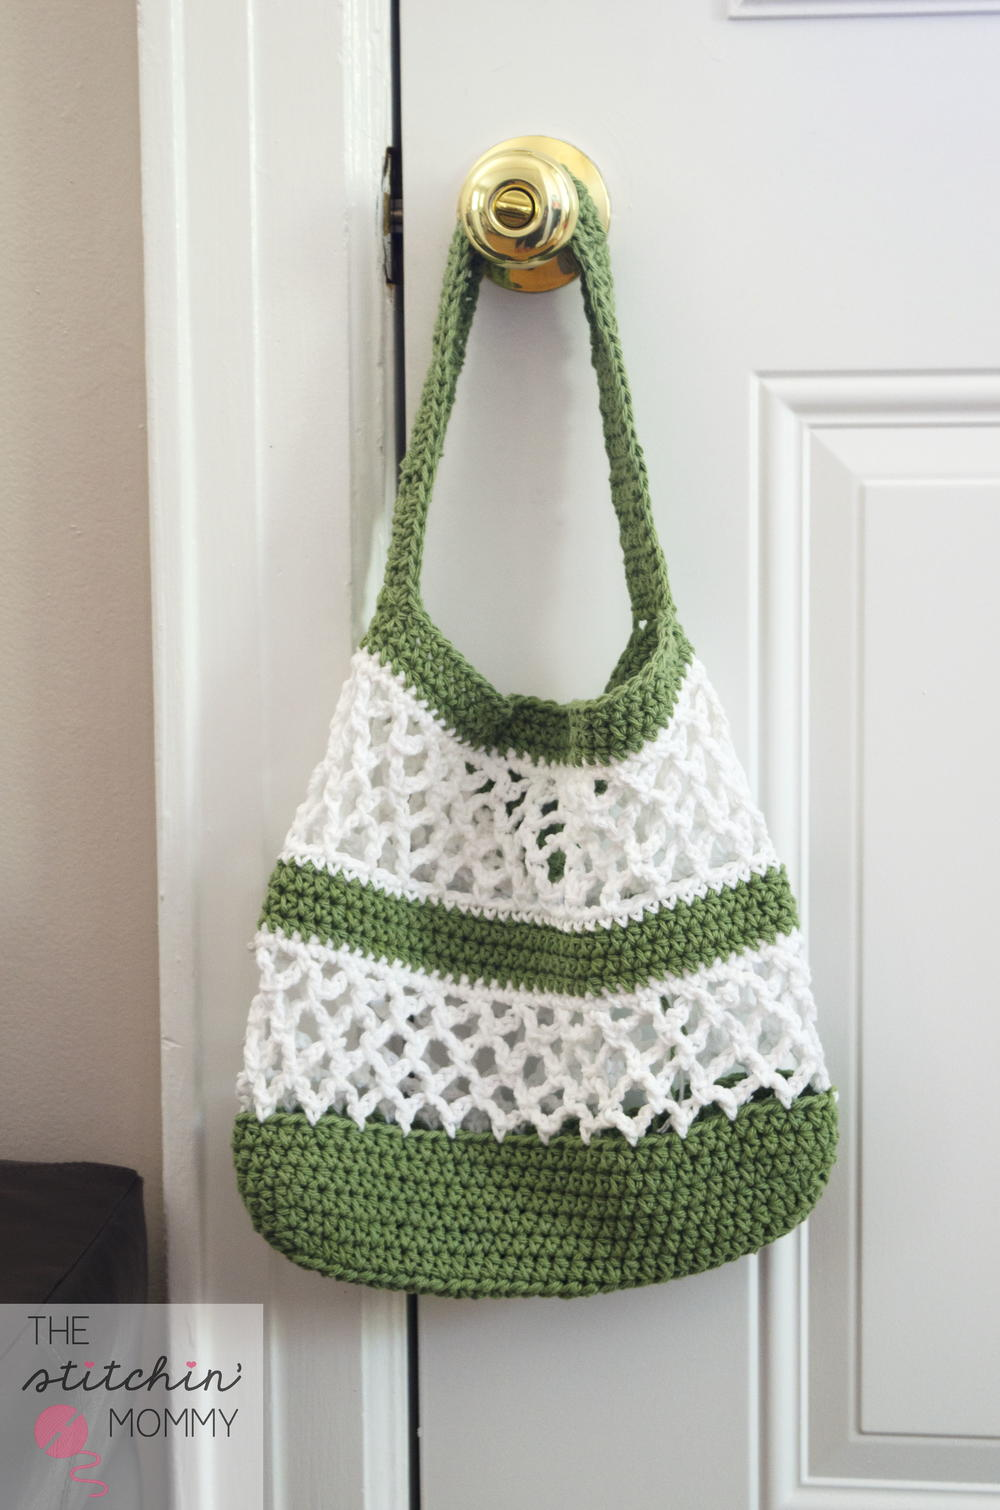 Easy Crochet Mesh Bag Pattern : Go Green Mesh Crochet Tote AllFreeCrochet.com